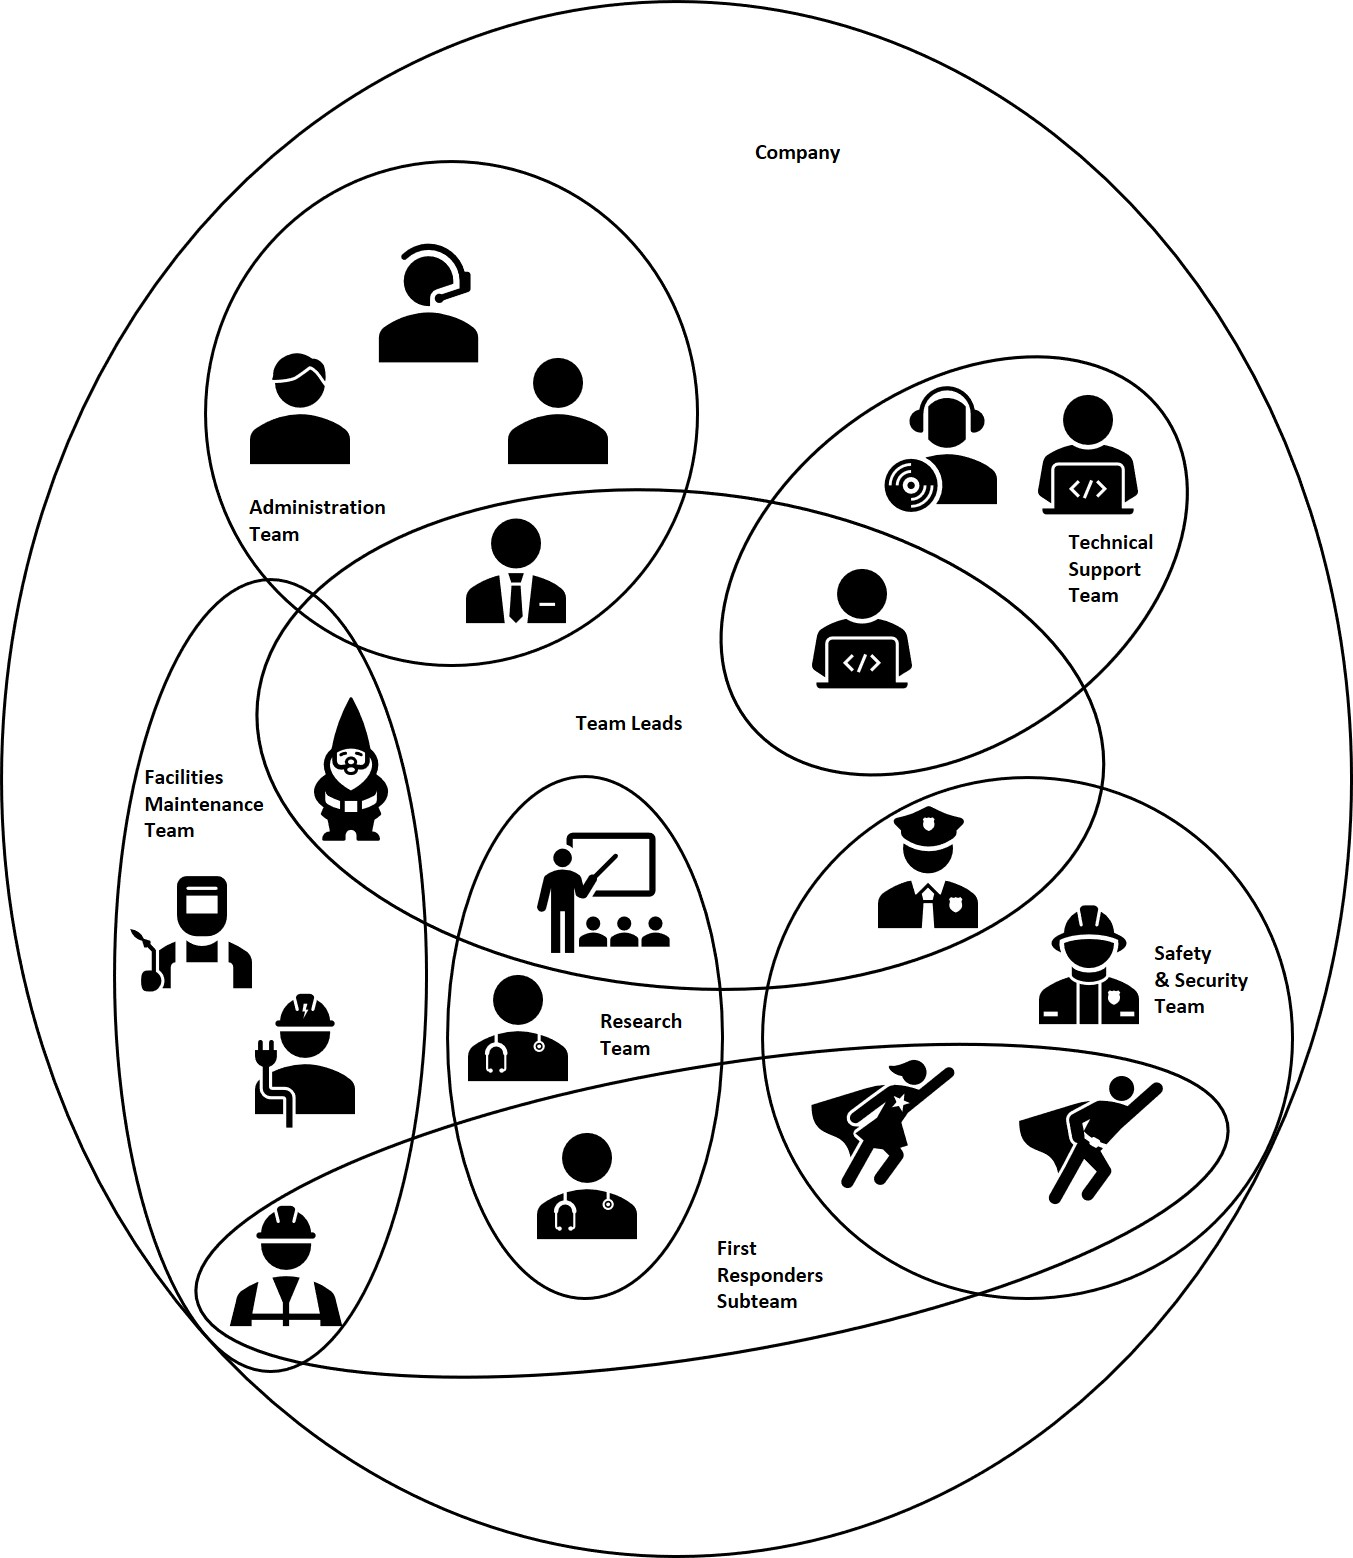 Organizational structure of groups, subgroups, and teams